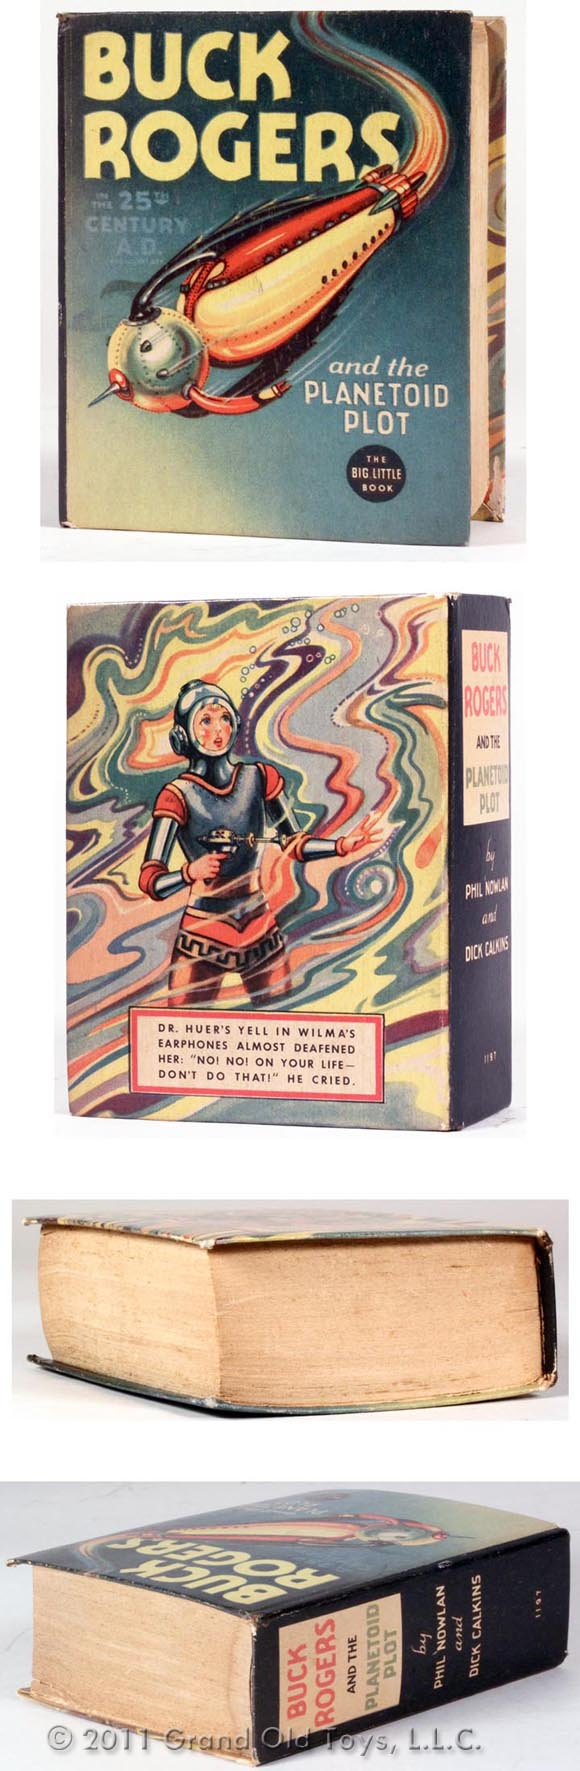 1936 Buck Rogers The Planetoid Plot Big Little Book